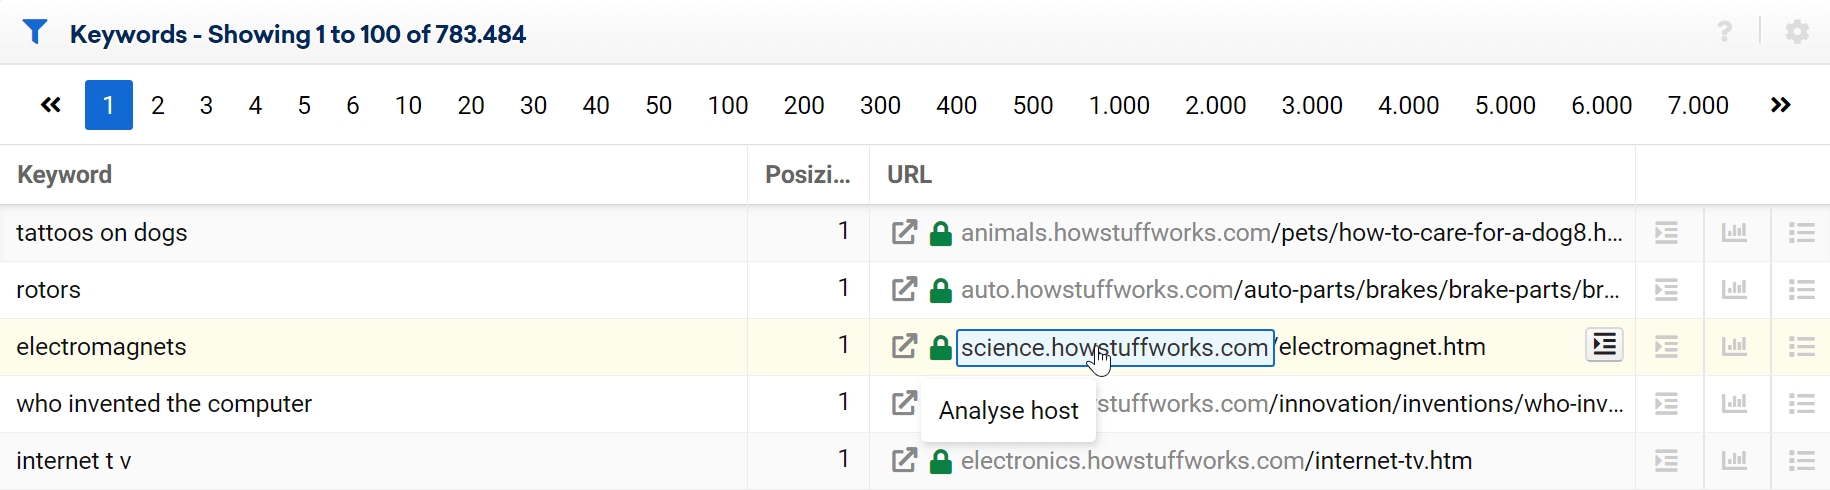 The Toolbox will highlight the part pf URL you can open and analyze